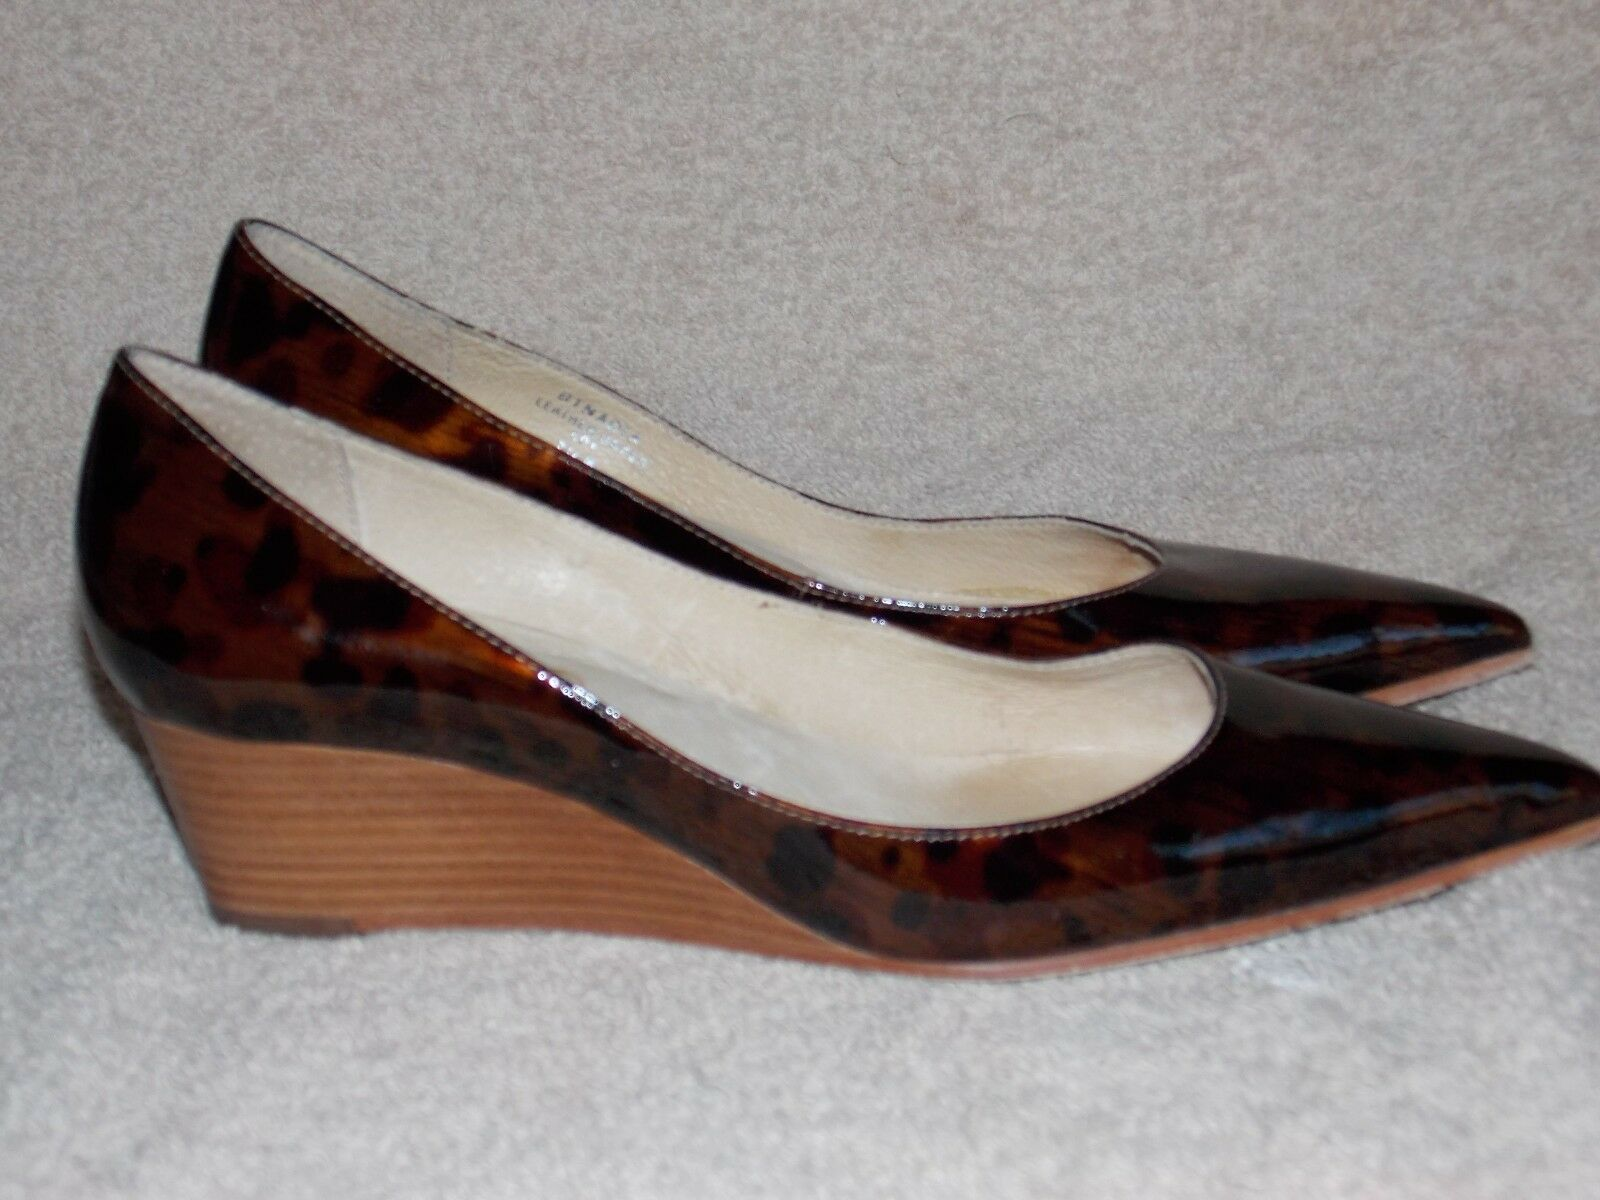 Boutique 58 NADIA Leapord Wedge Pumps chaussures 7.5M For femmes Used